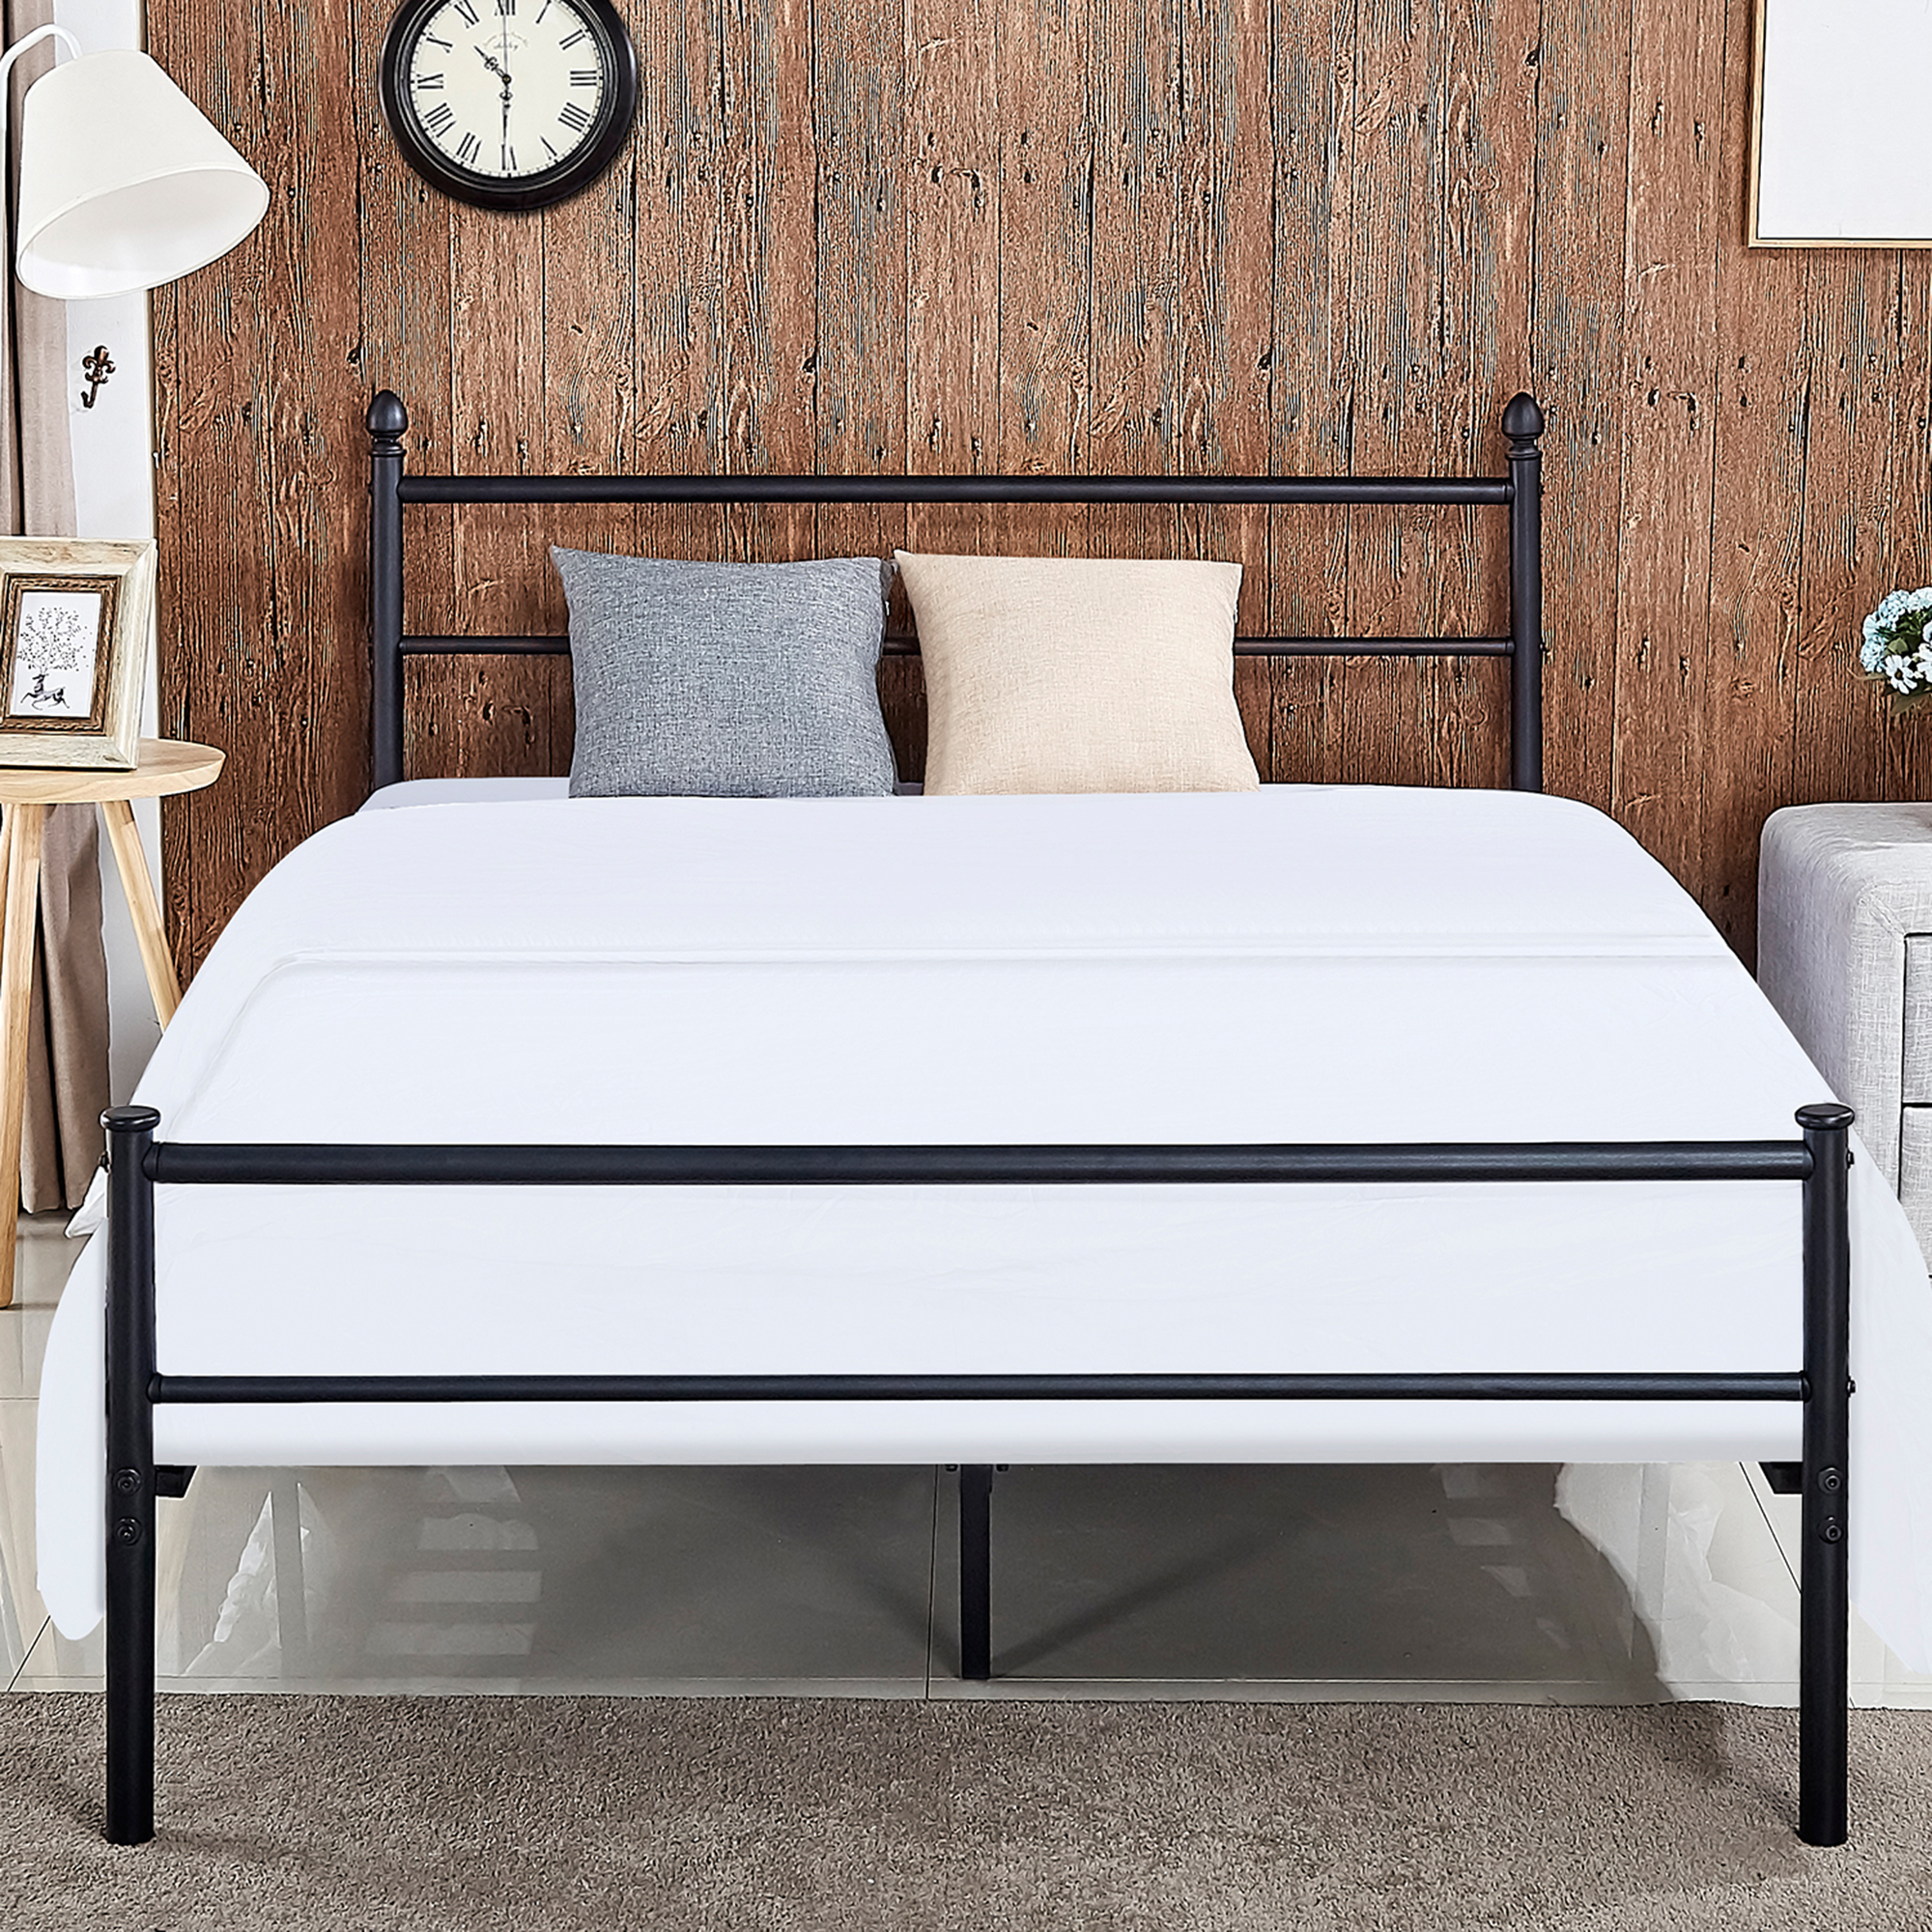 metal platform queen bed frame bed box spring replacement with headboard